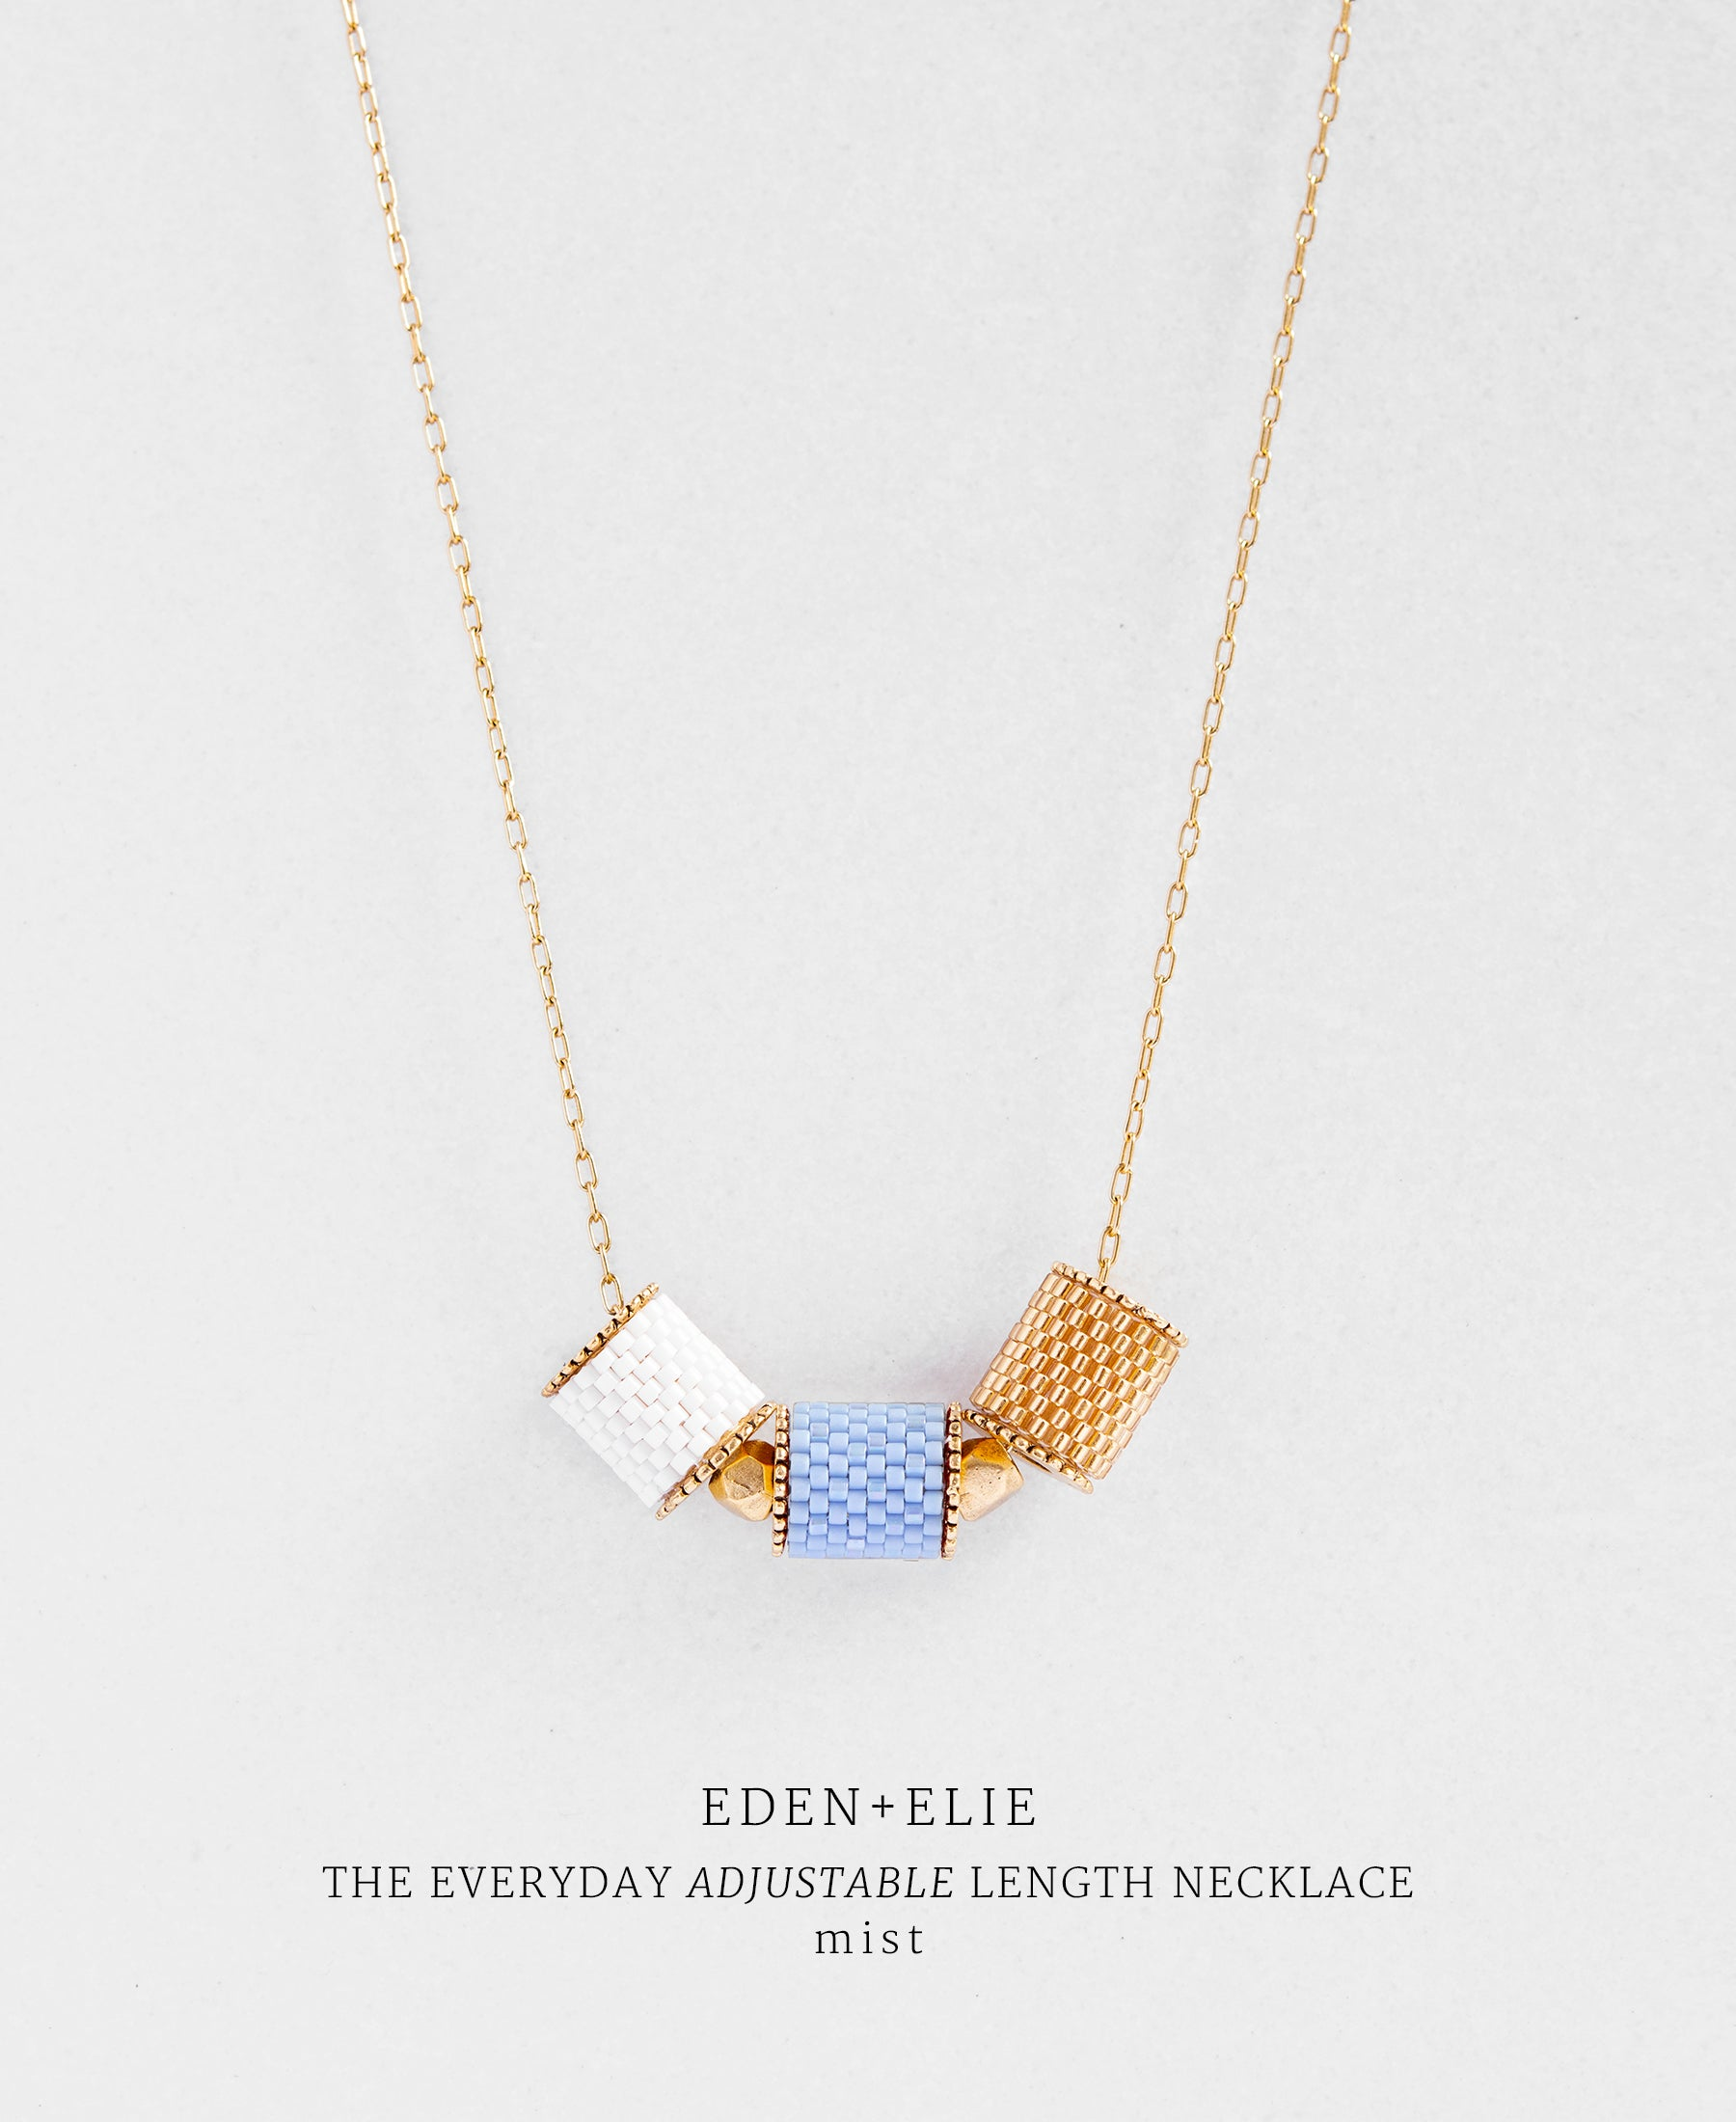 EDEN + ELIE Everyday adjustable length necklace - mist blue